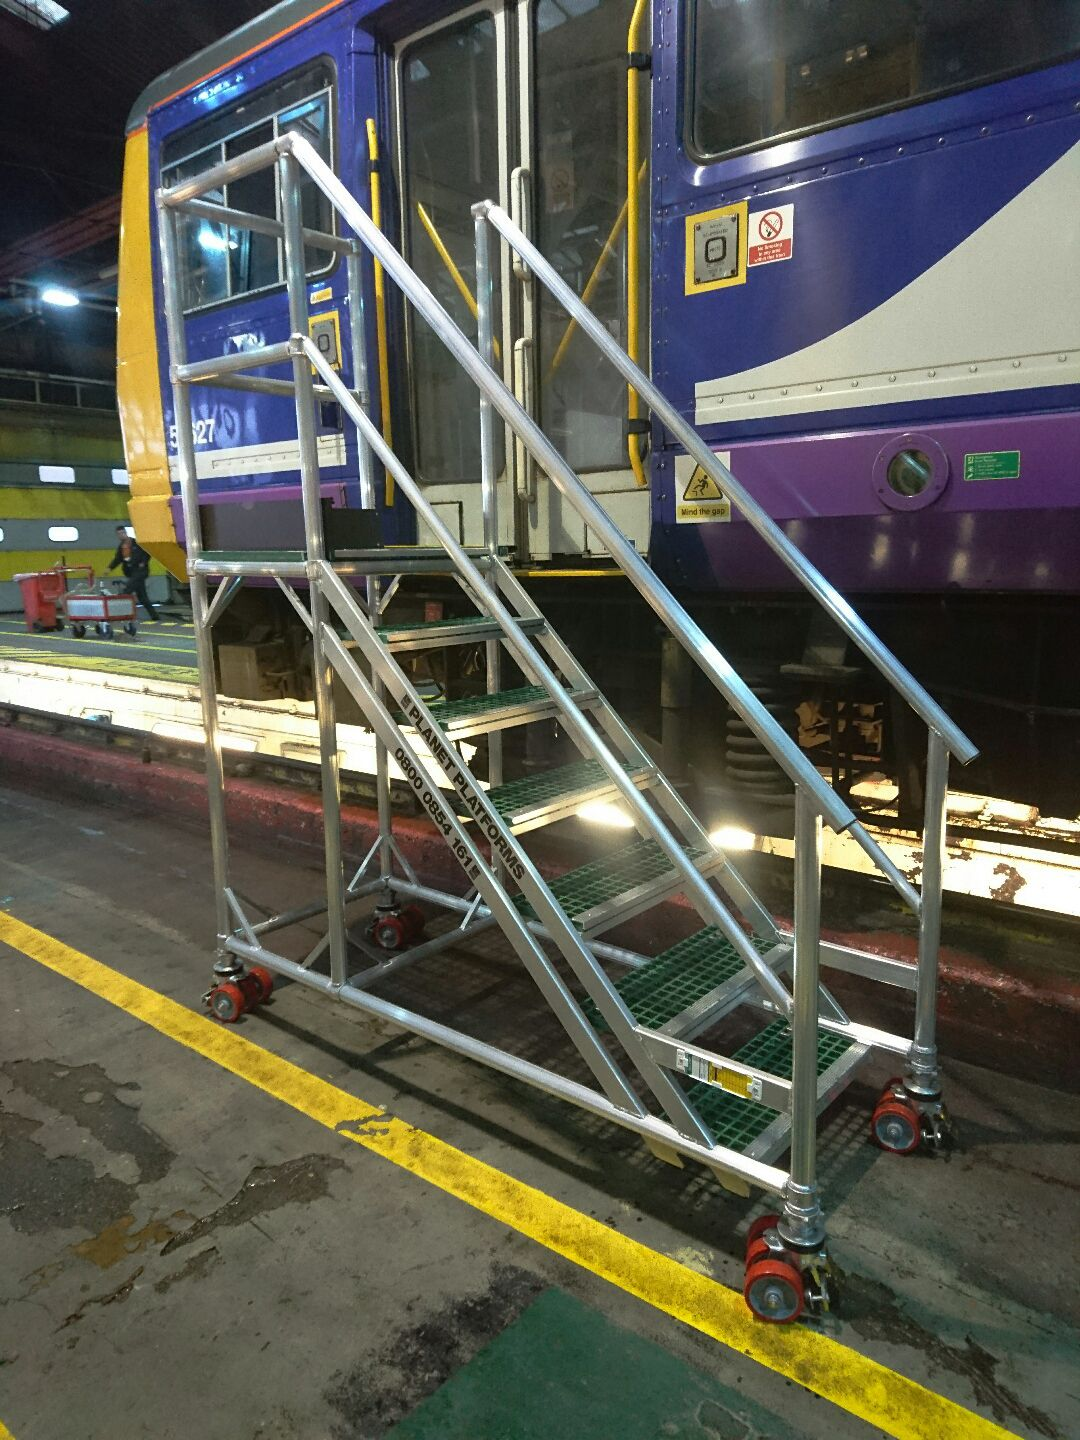 78. Train Aluminium Access Steps